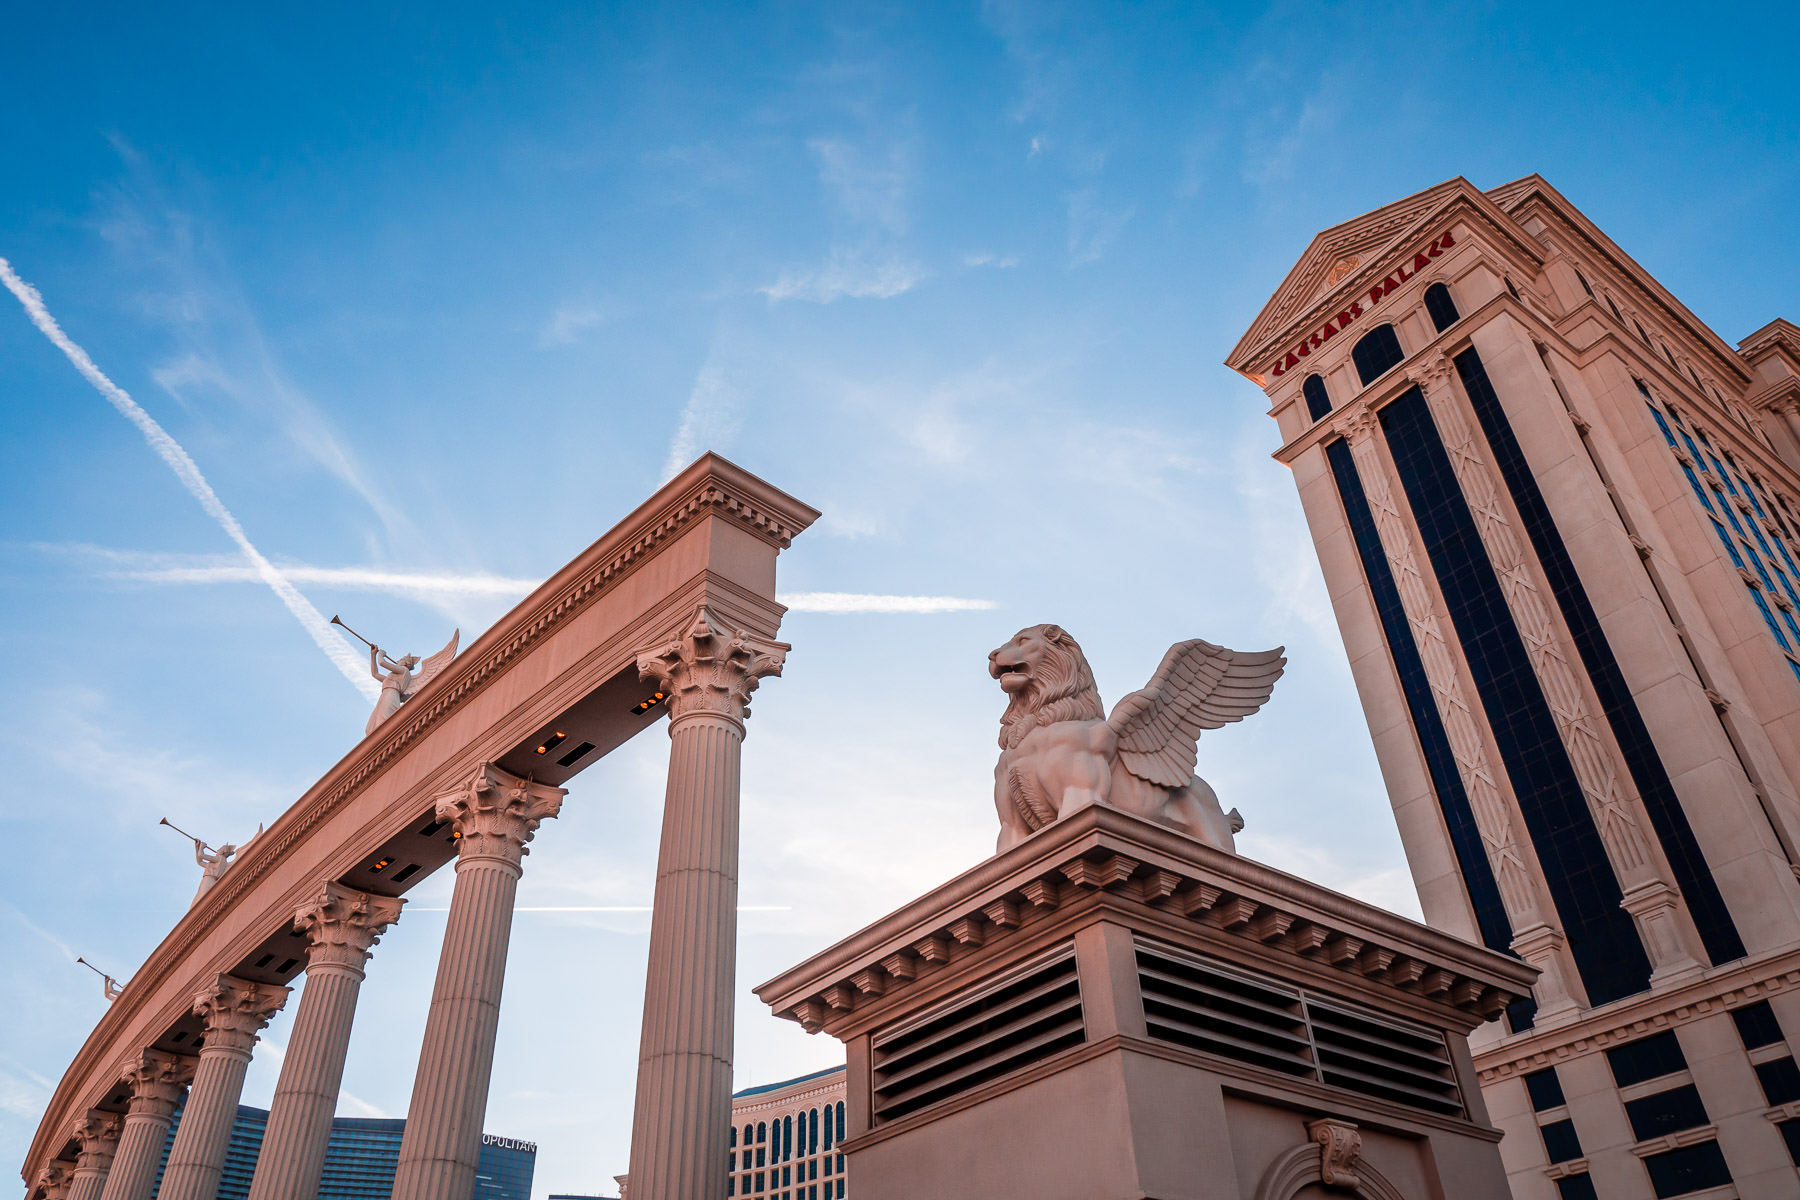 A statue of a winged lion seems to stand guard at the entrance to Las Vegas' Caesars Palace.